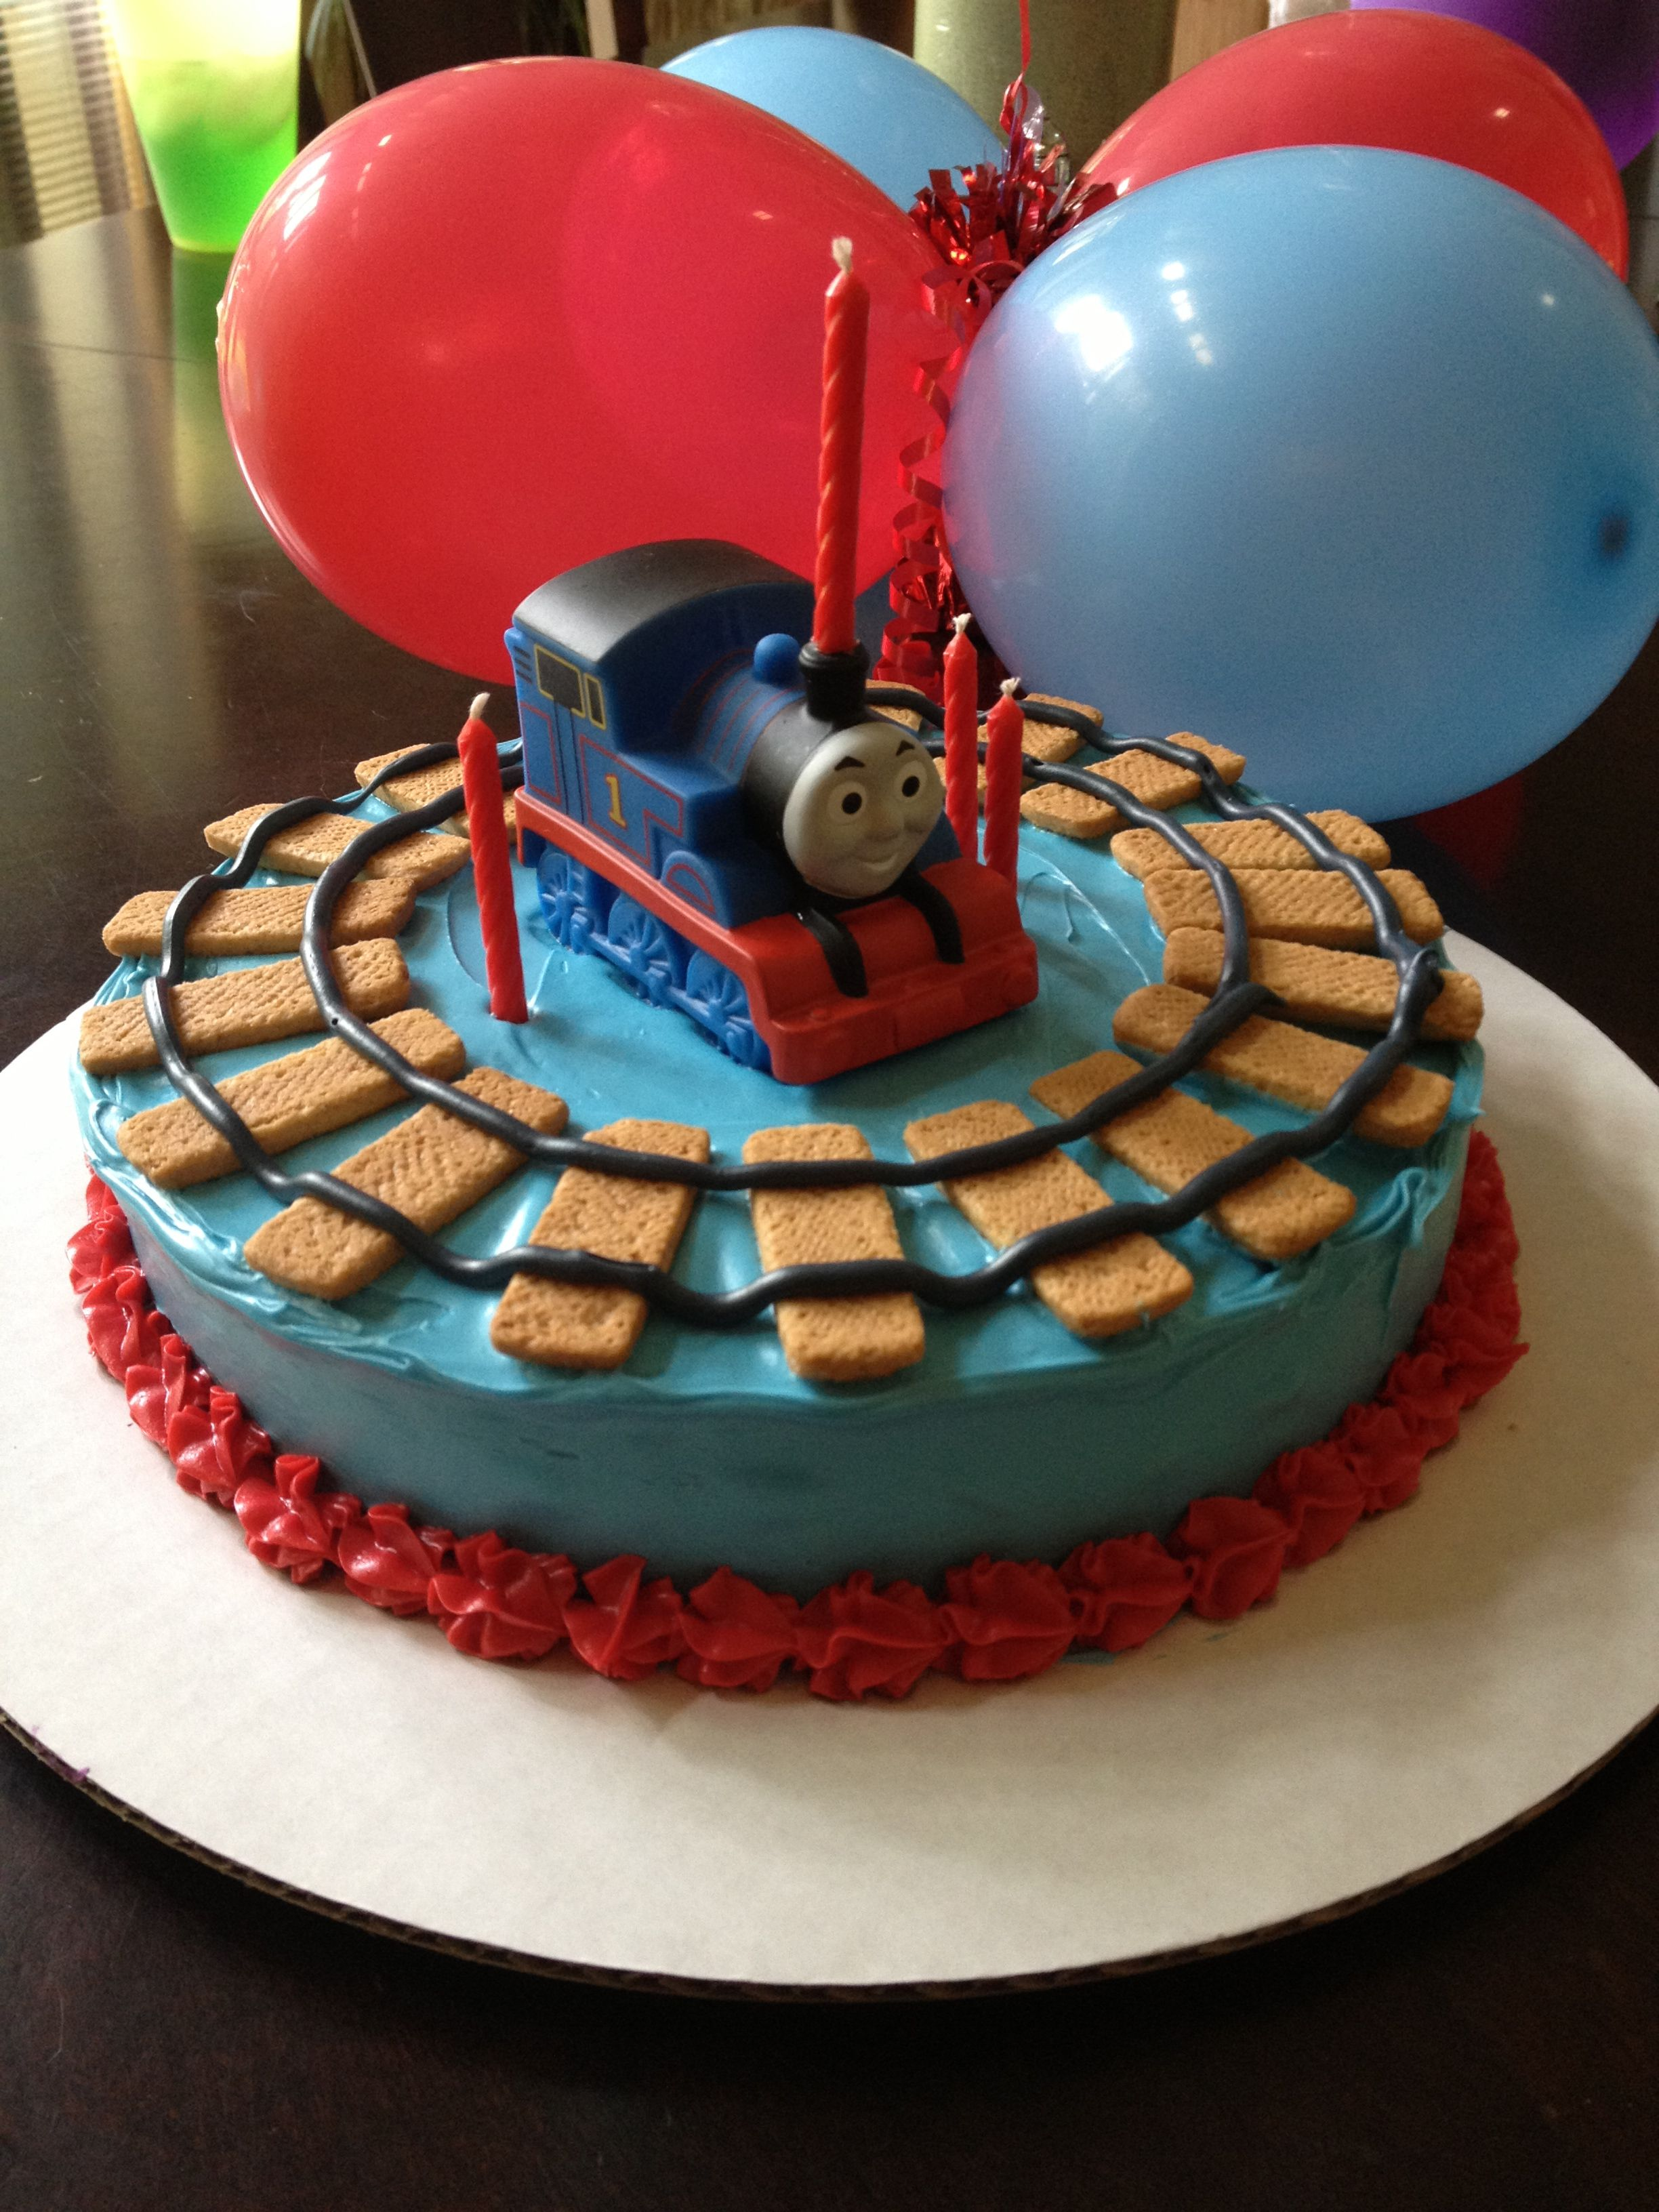 Thomas The Train Birthday Cake I Usually Shy Away From A Character Birthday But I Actually Lo Train Birthday Cake Birthday Cake Kids Thomas Birthday Parties